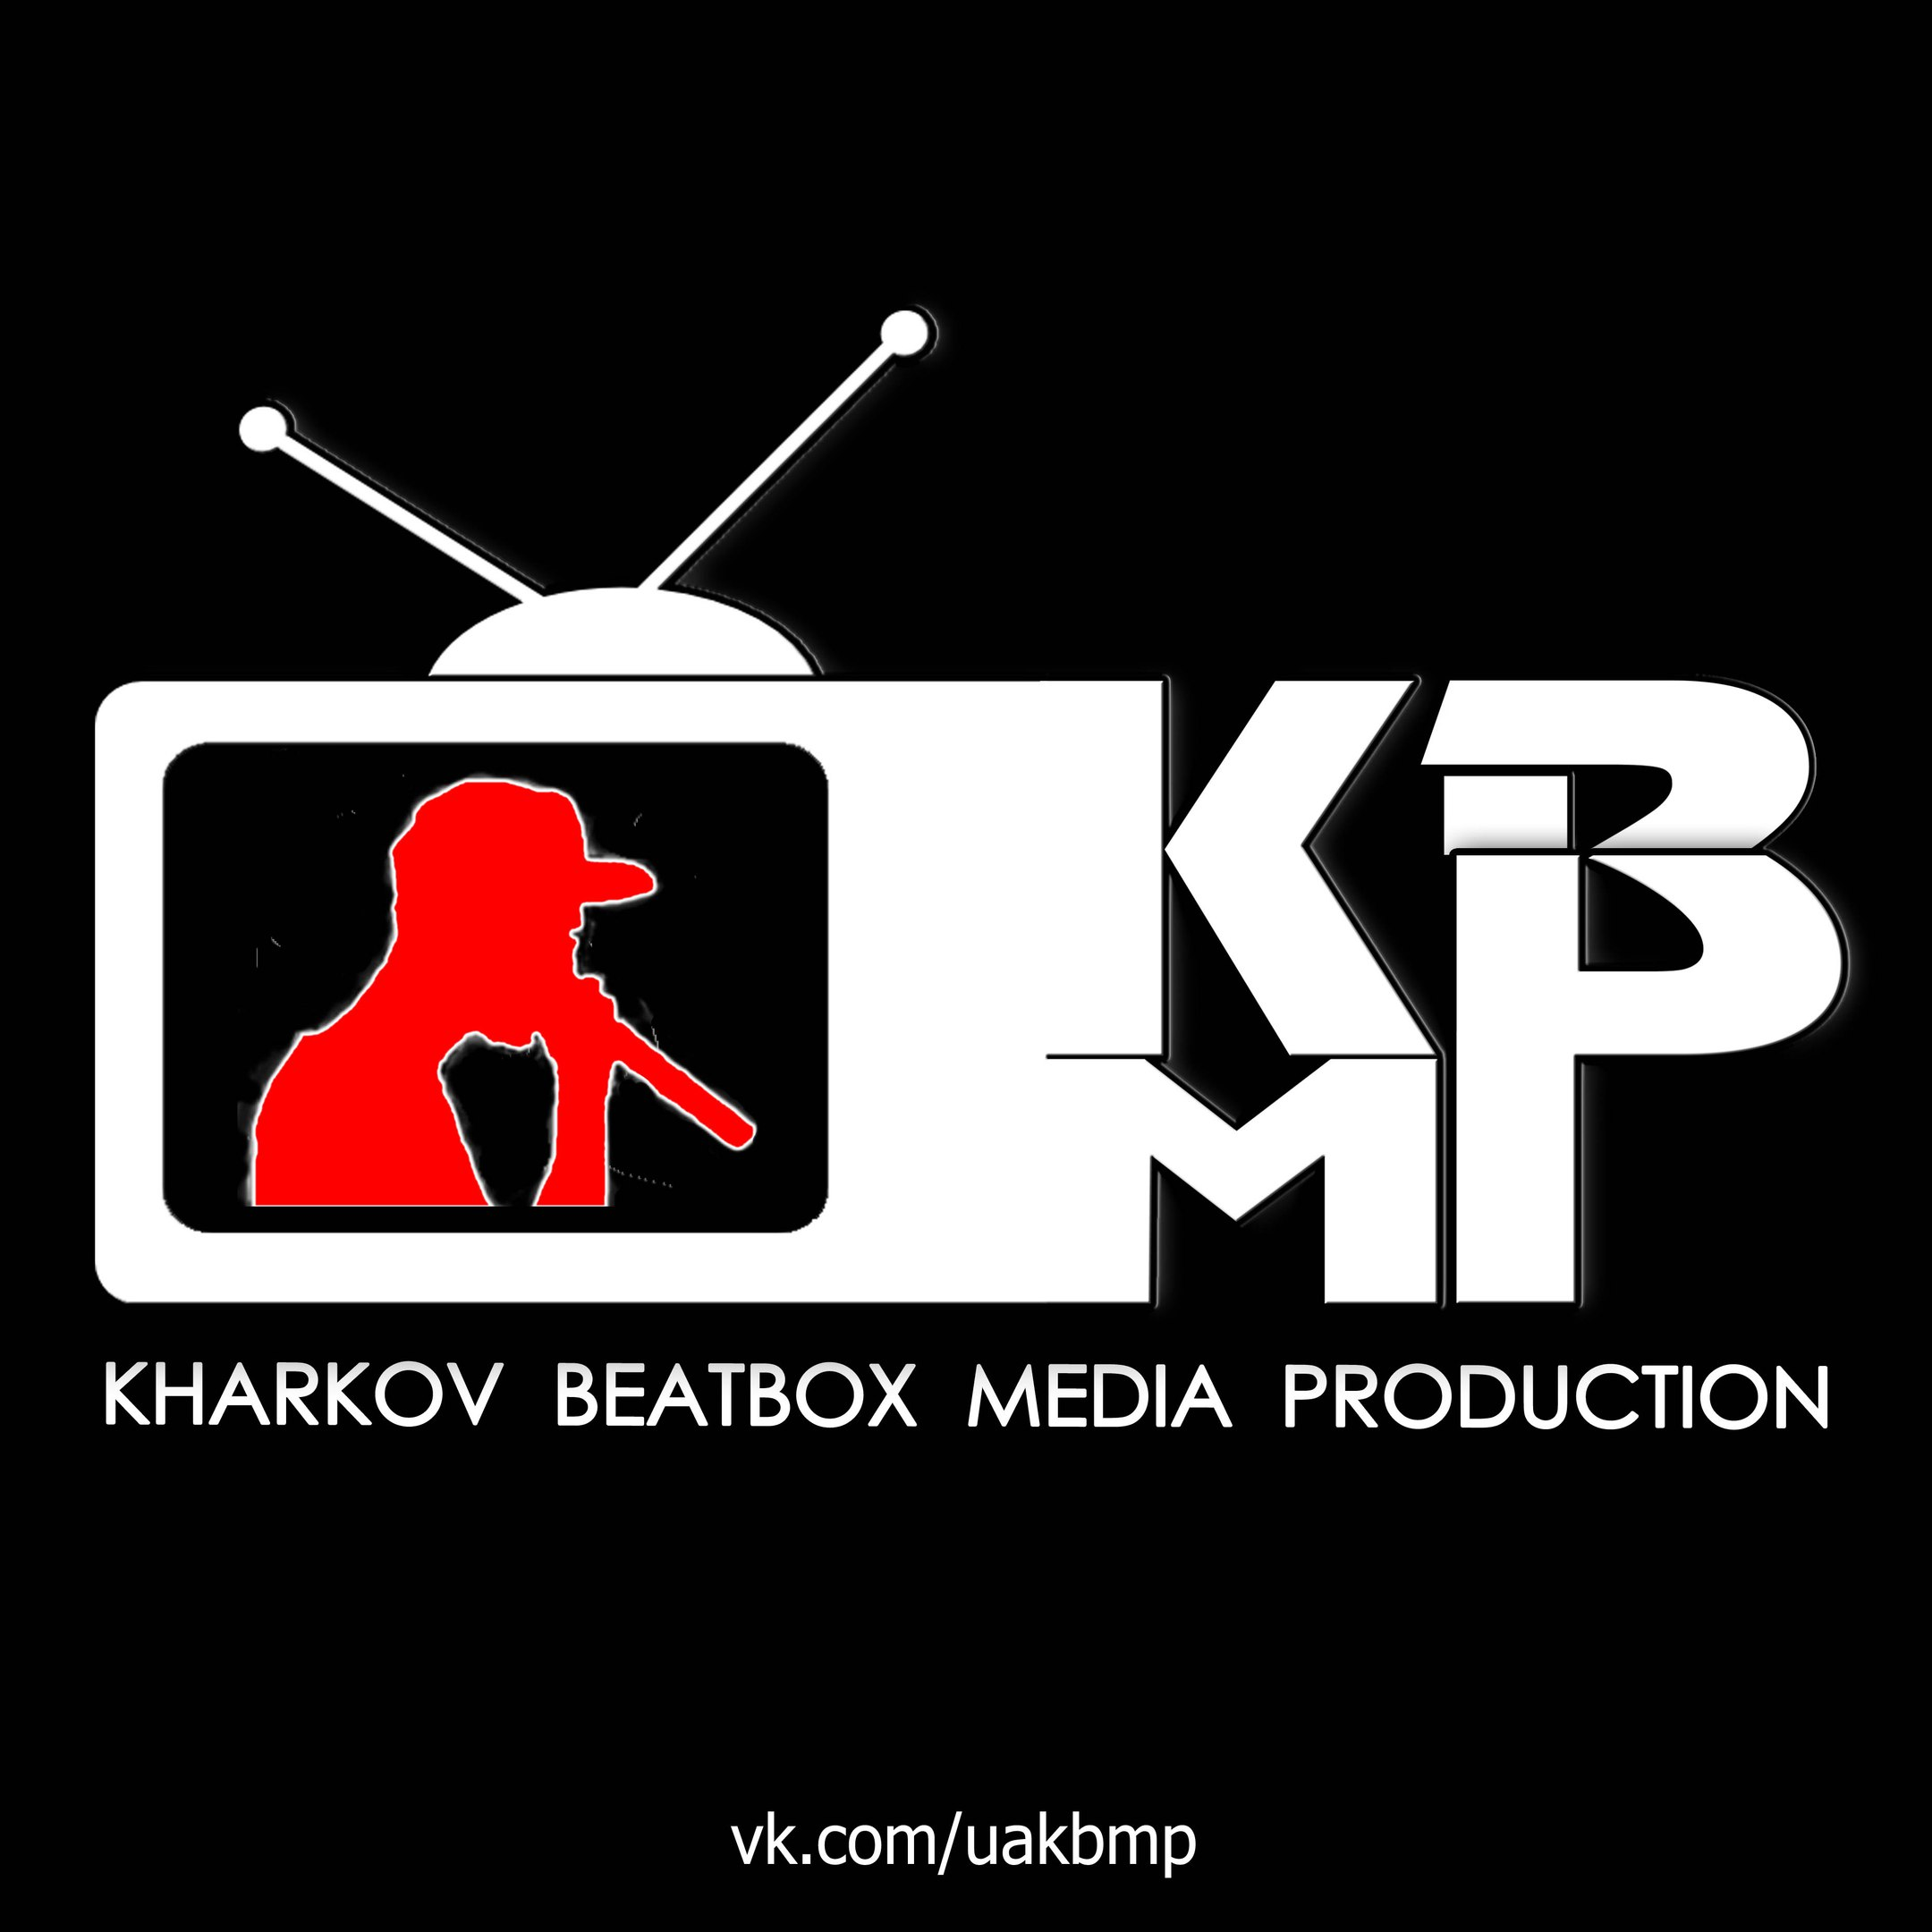 Логотип KBMP PRODUCTION